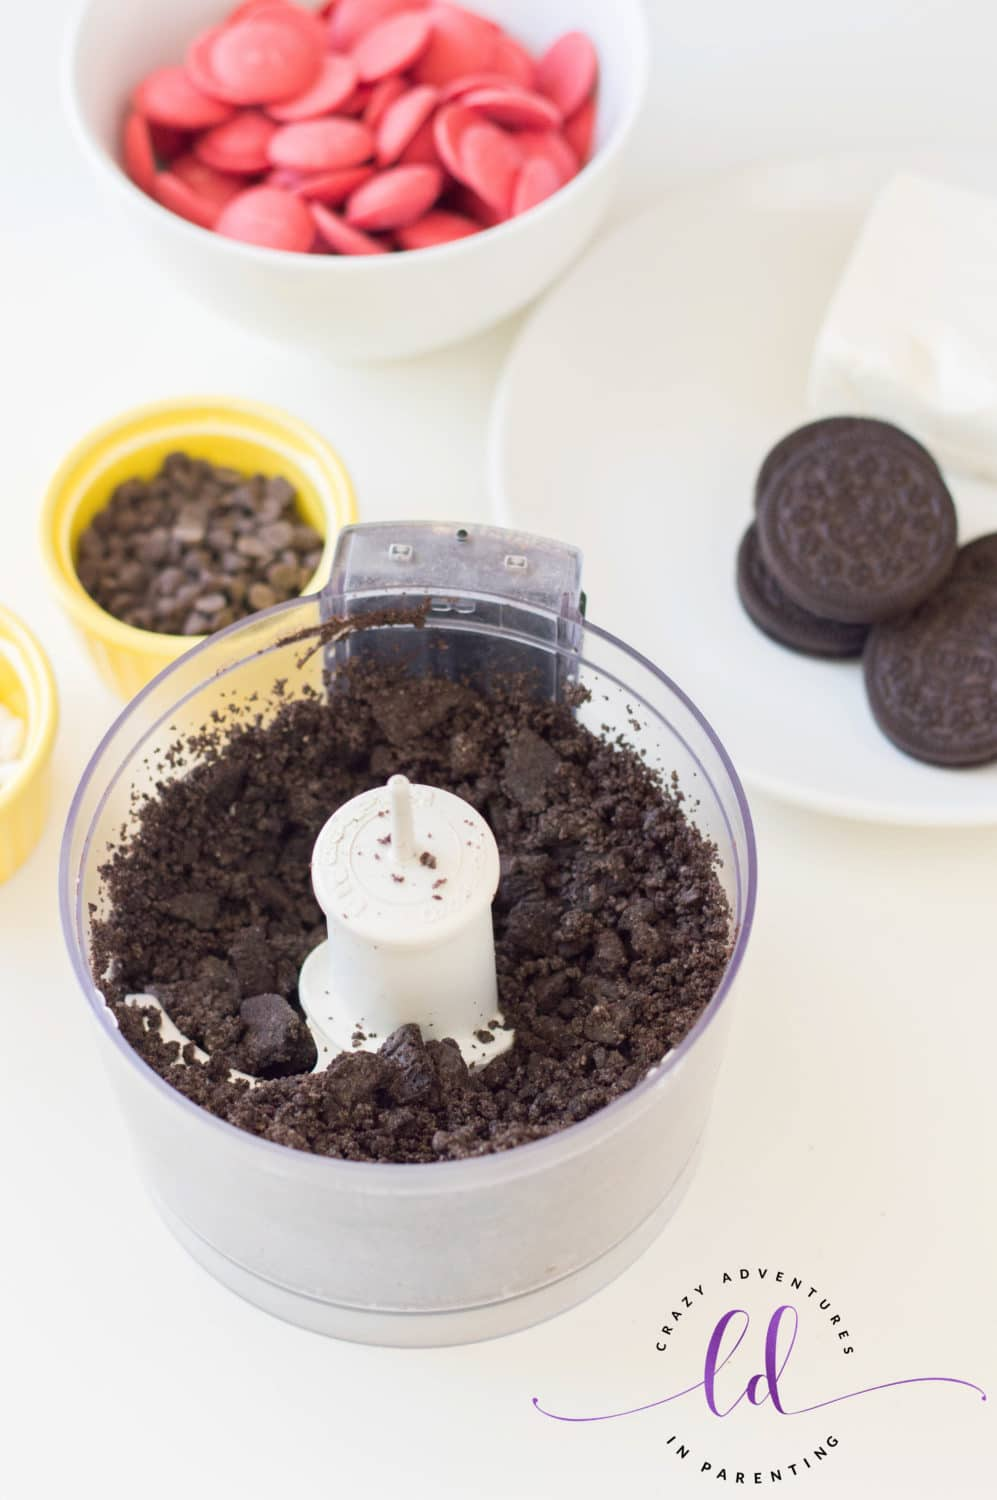 Crush Oreos in Food Processor to Make Ladybug Lovebug Oreo Truffles